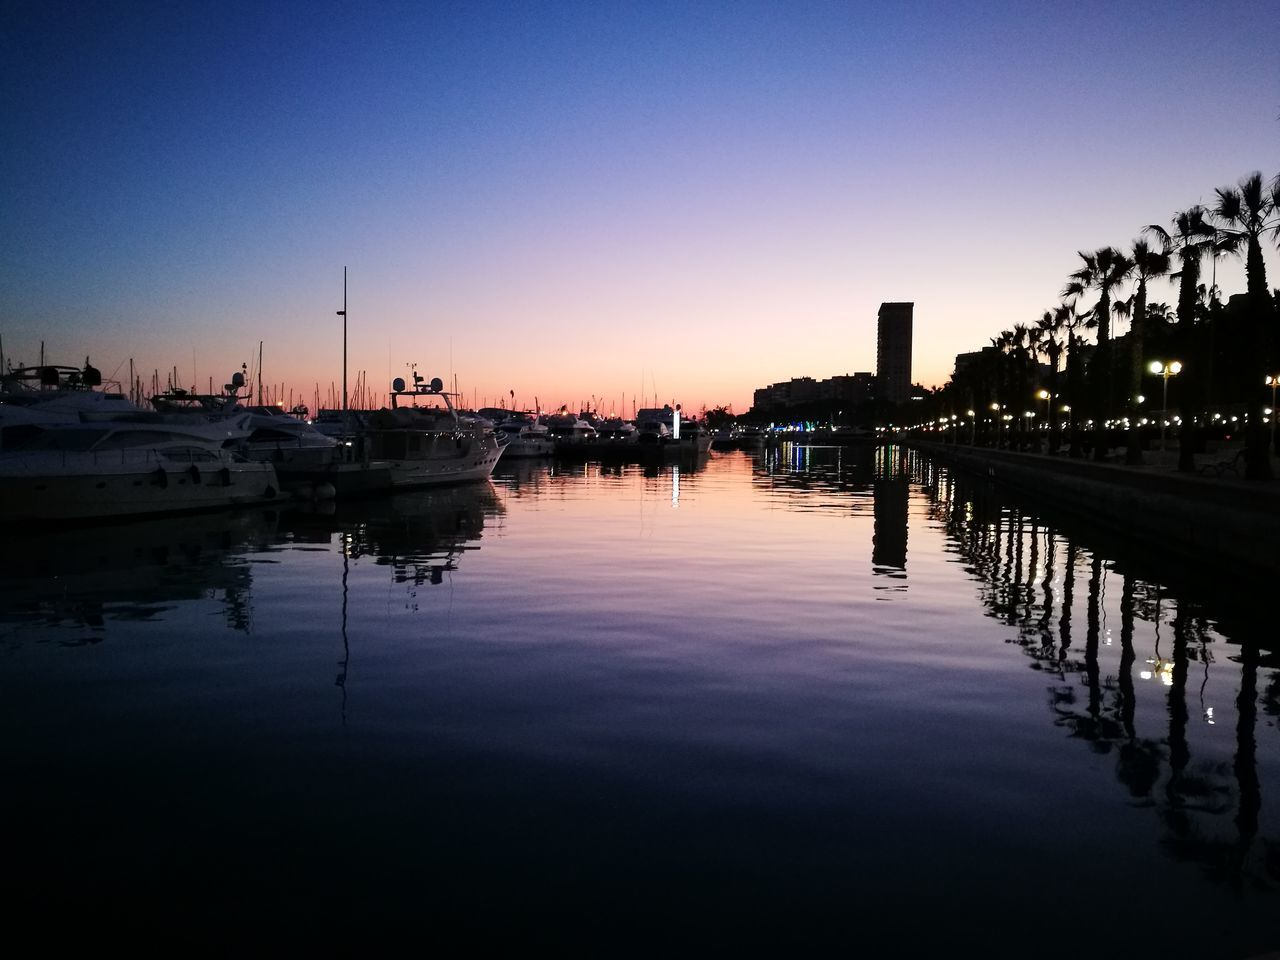 Puerto de Alicante Outdoors Water Nature No People Sea And Sky Sea Sinfiltros Espectacular Arrival Tranquility Nautical Vessel Reflection Sunset Sky Vacations Tree Day